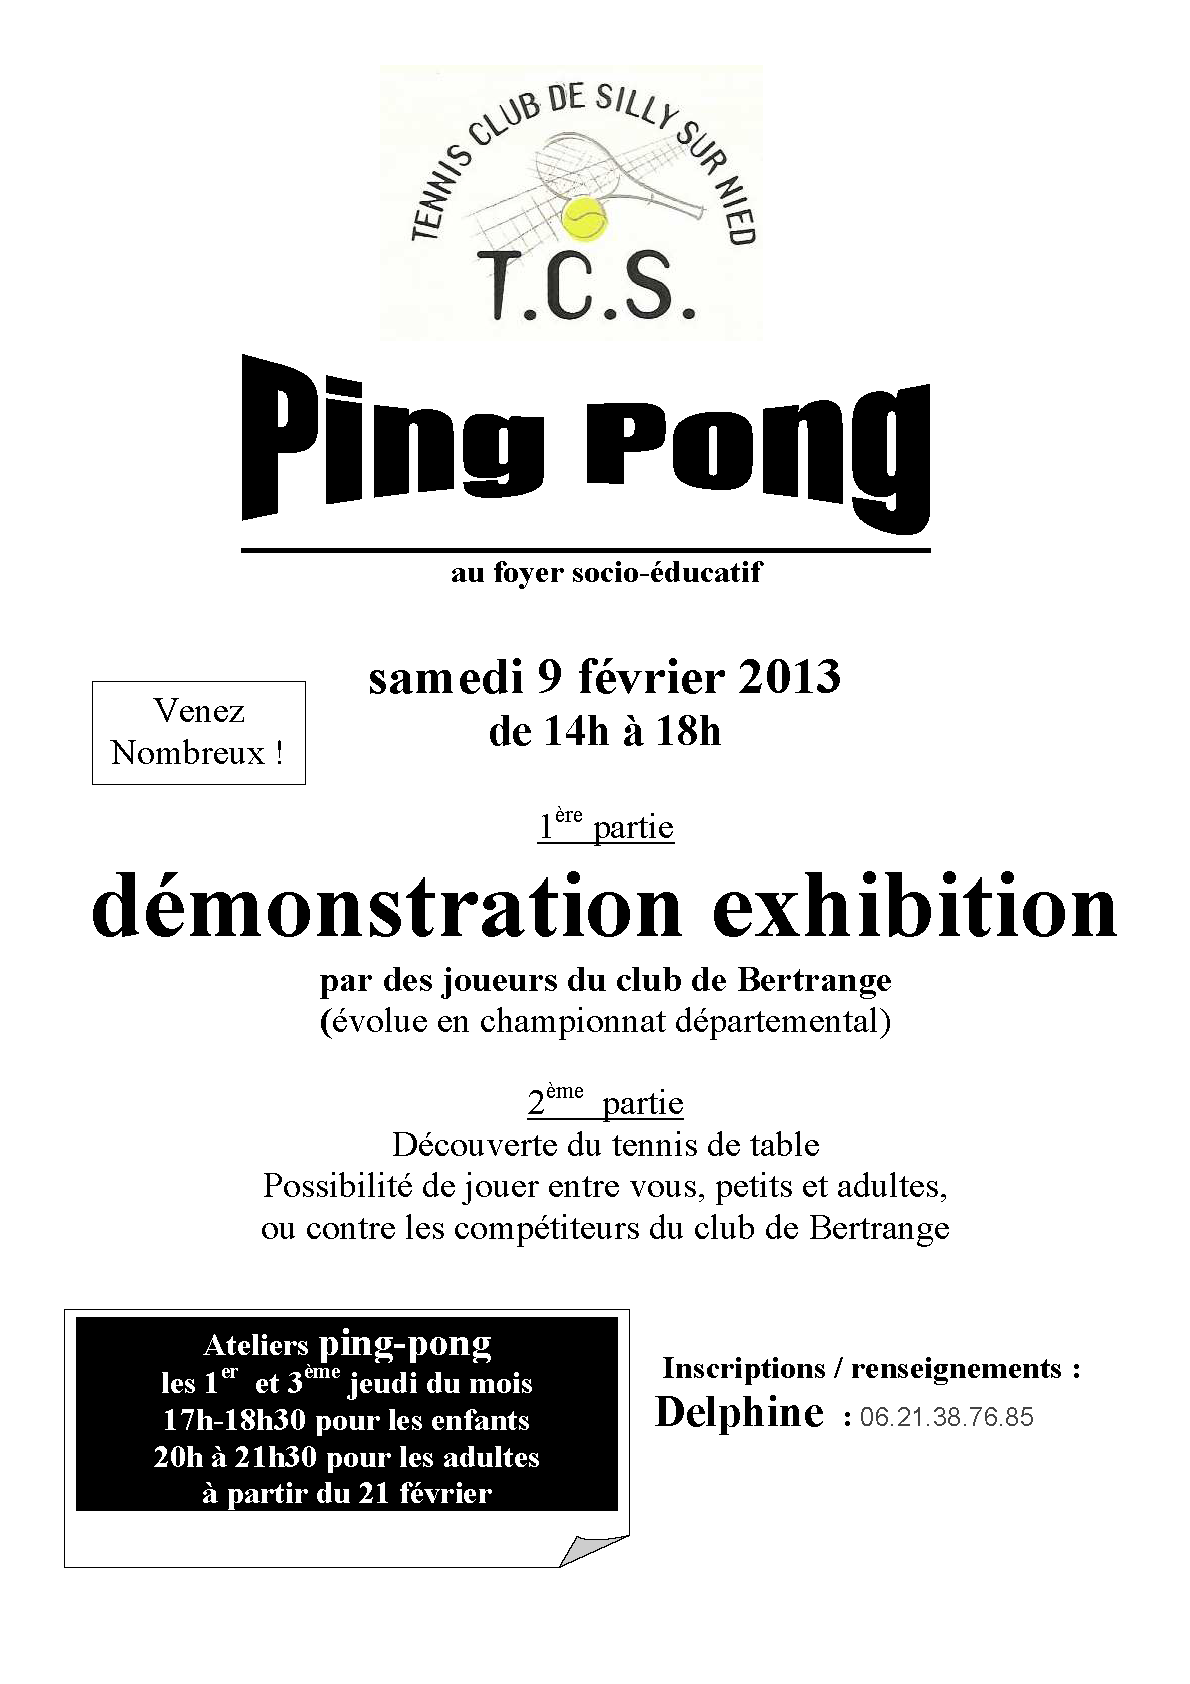 Ping Pong - Démonstration Exhibition 2013